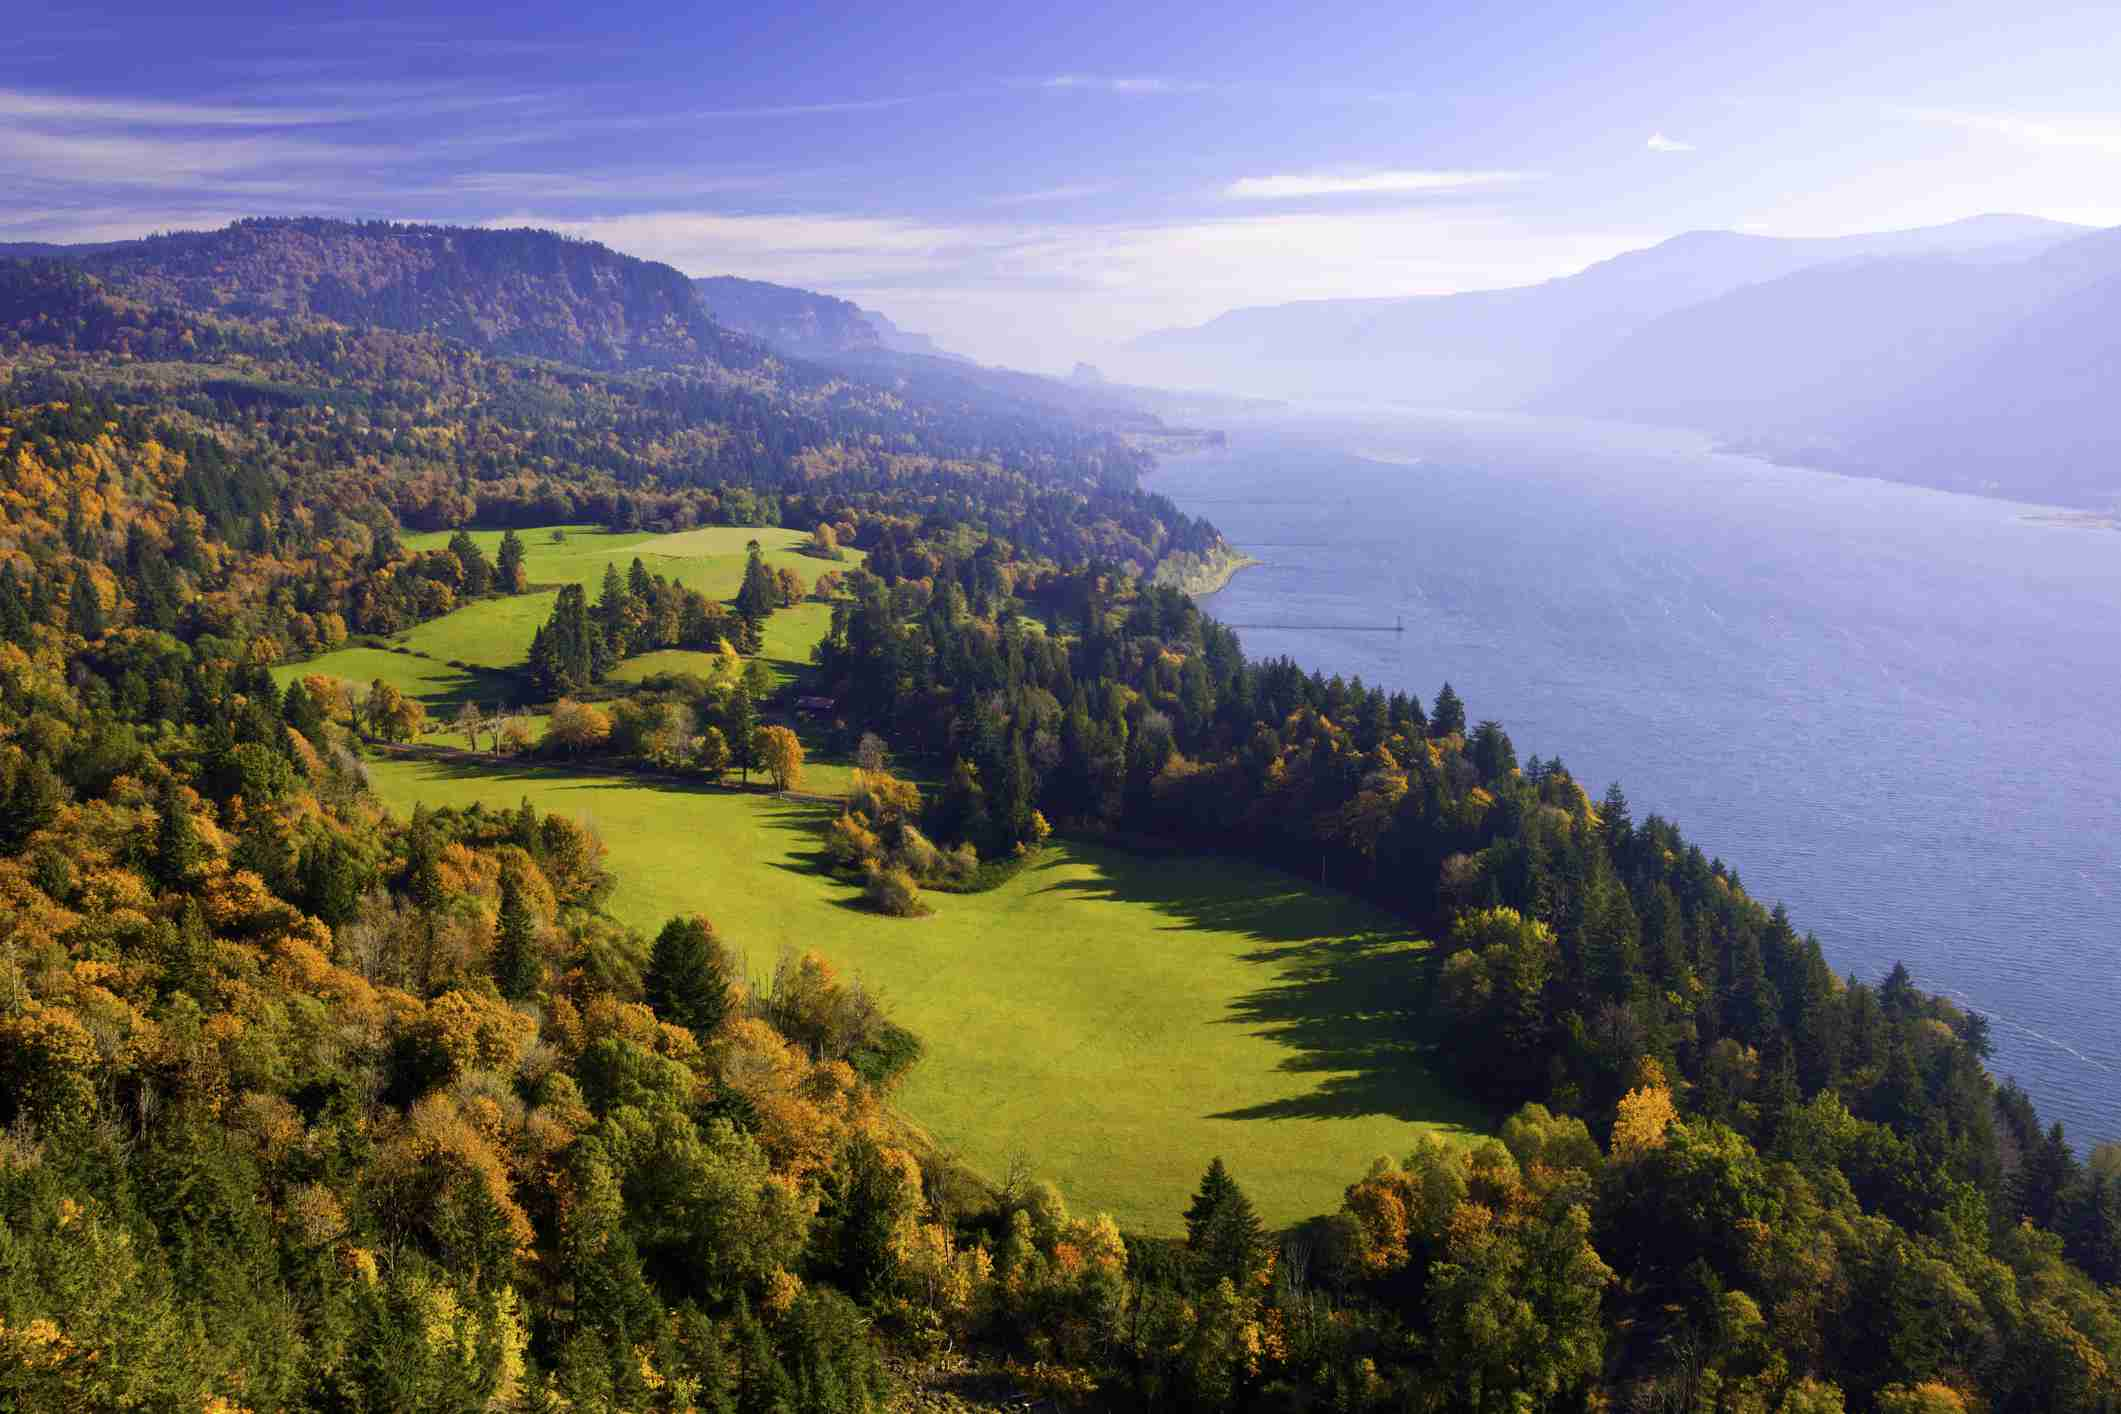 Aerial view of Cape Horn with a forest of trees in shades of gold, green, and orange surrounding a small patch of green grass adjacent to the Columbia River under a bright blue sky on a sunny day